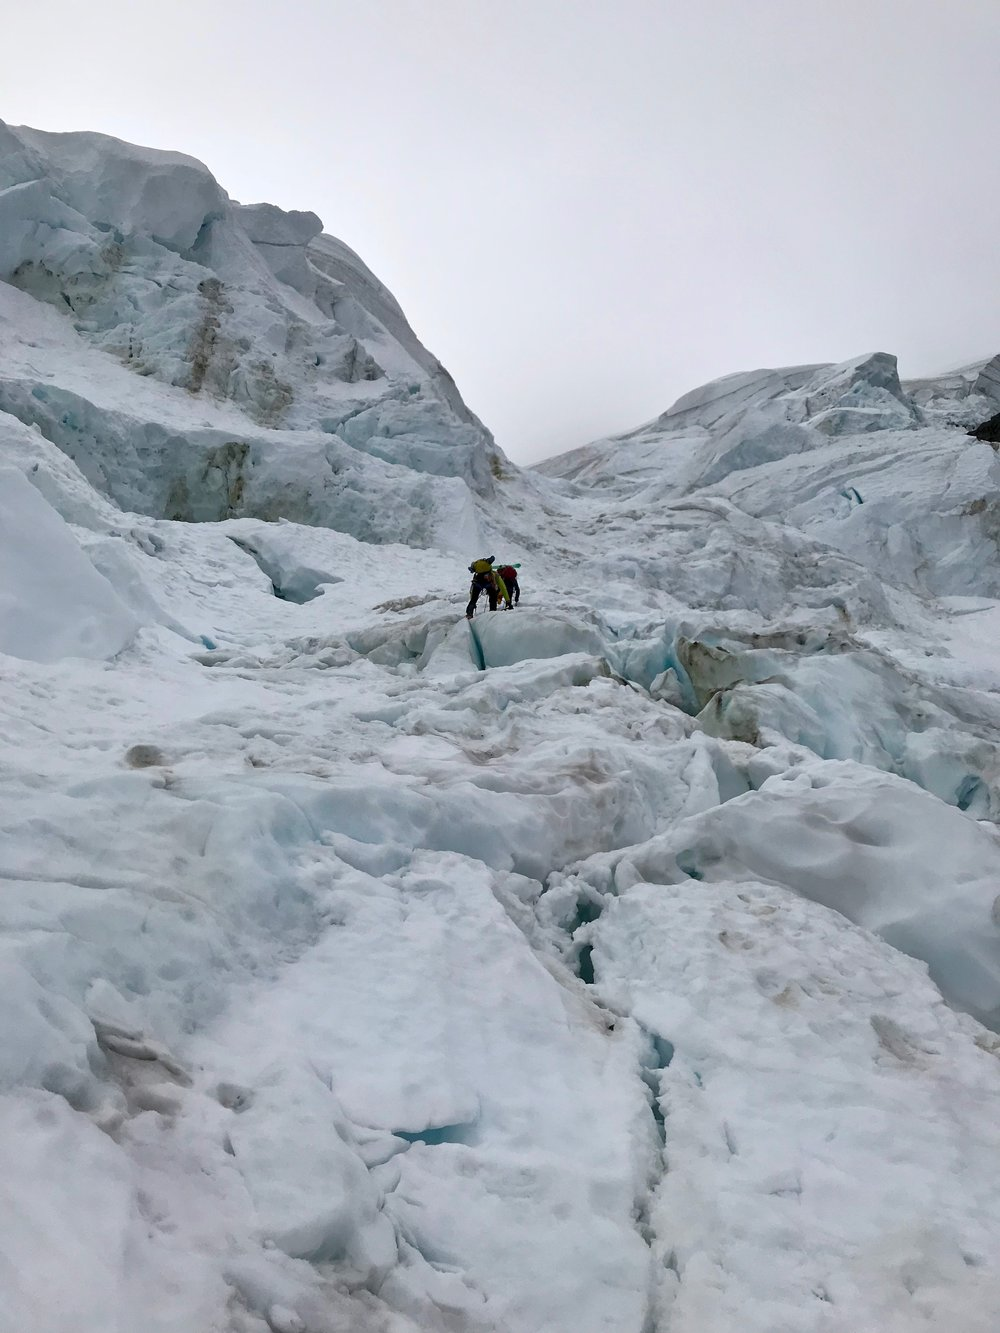 Going through the ice gully